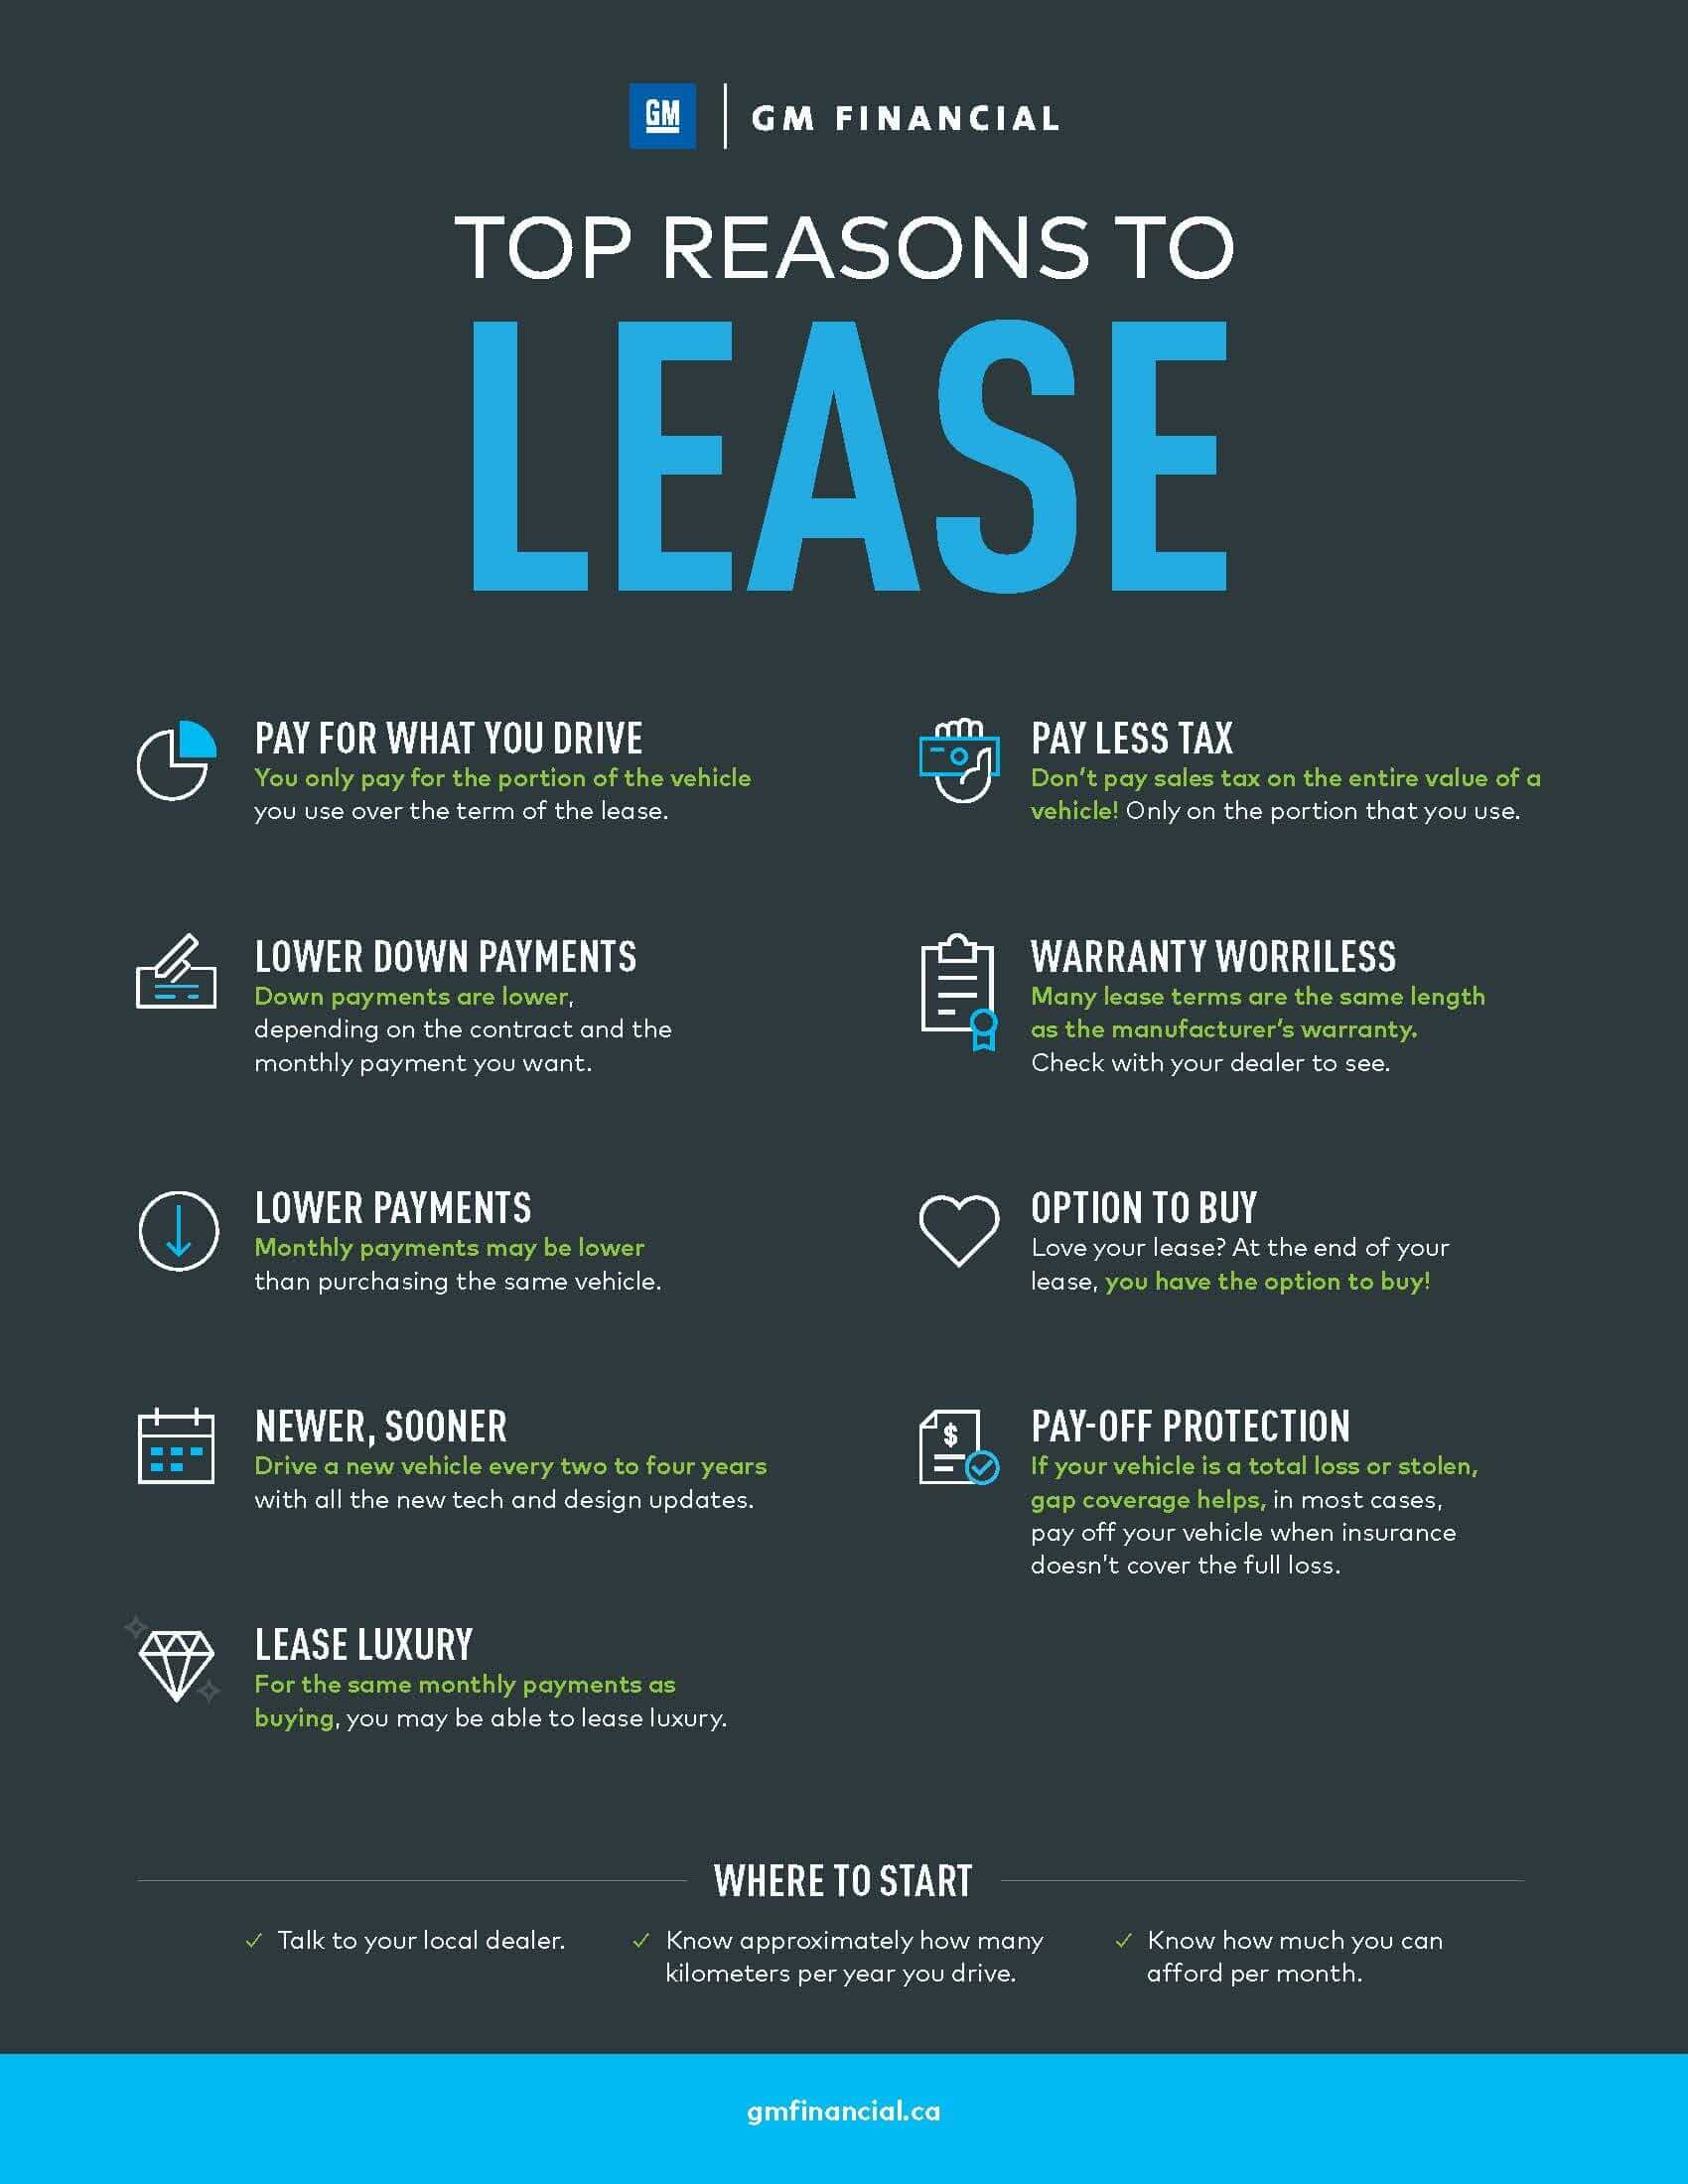 Top Reasons to Lease